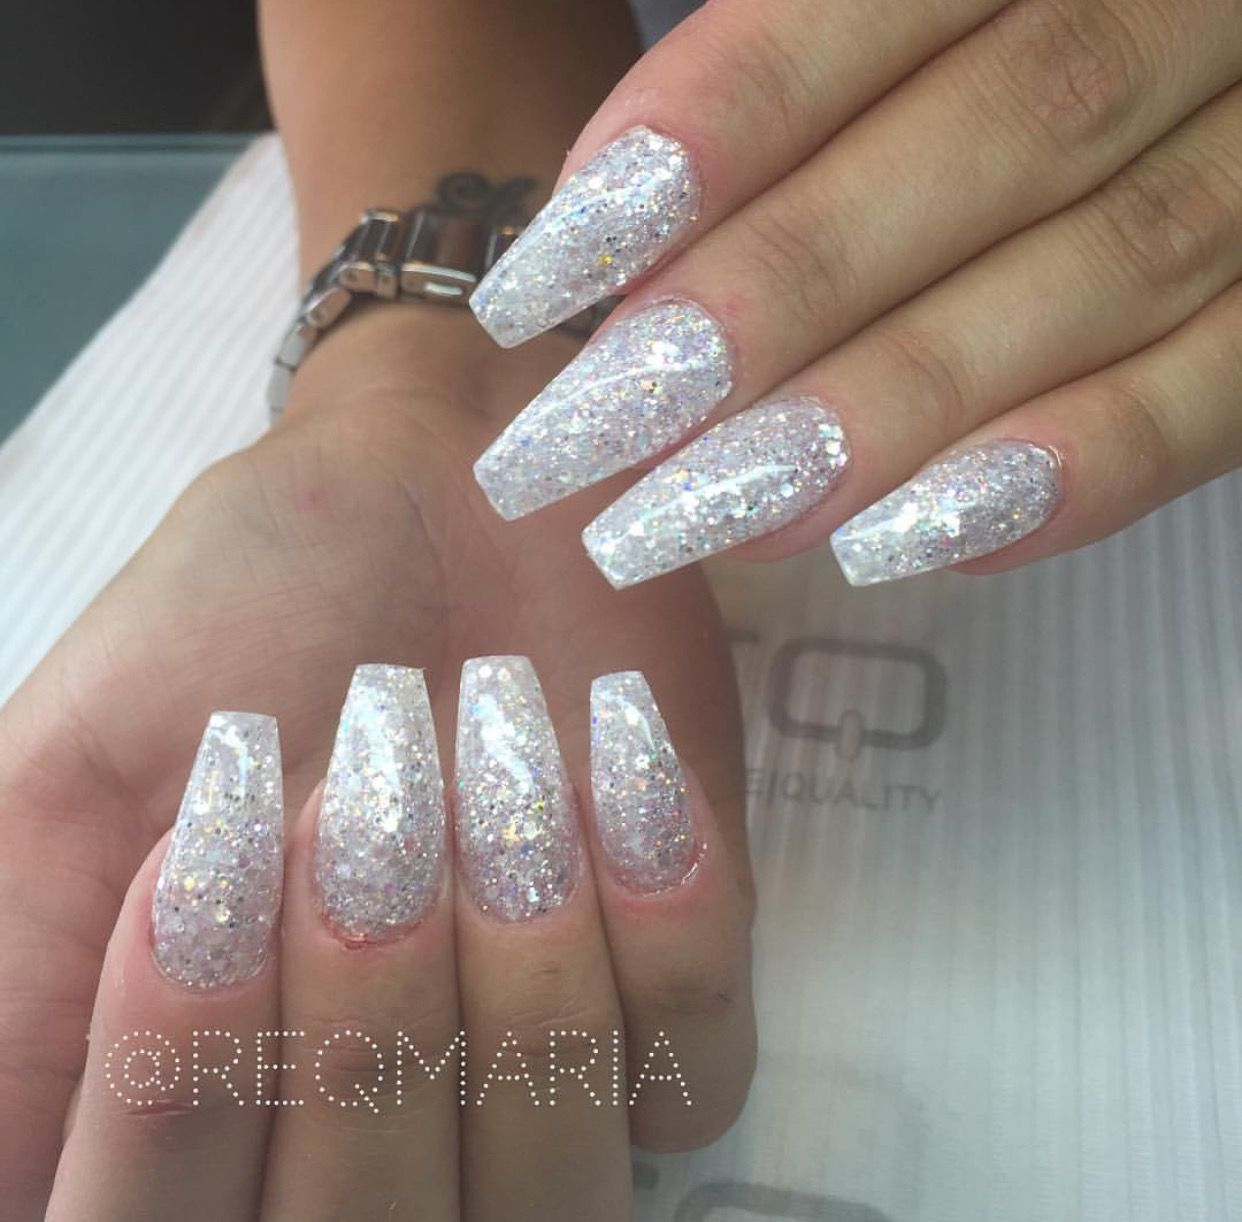 Pin By Iamkween On Nail Party Sparkle Acrylic Nails Sparkly Nails Silver Nails